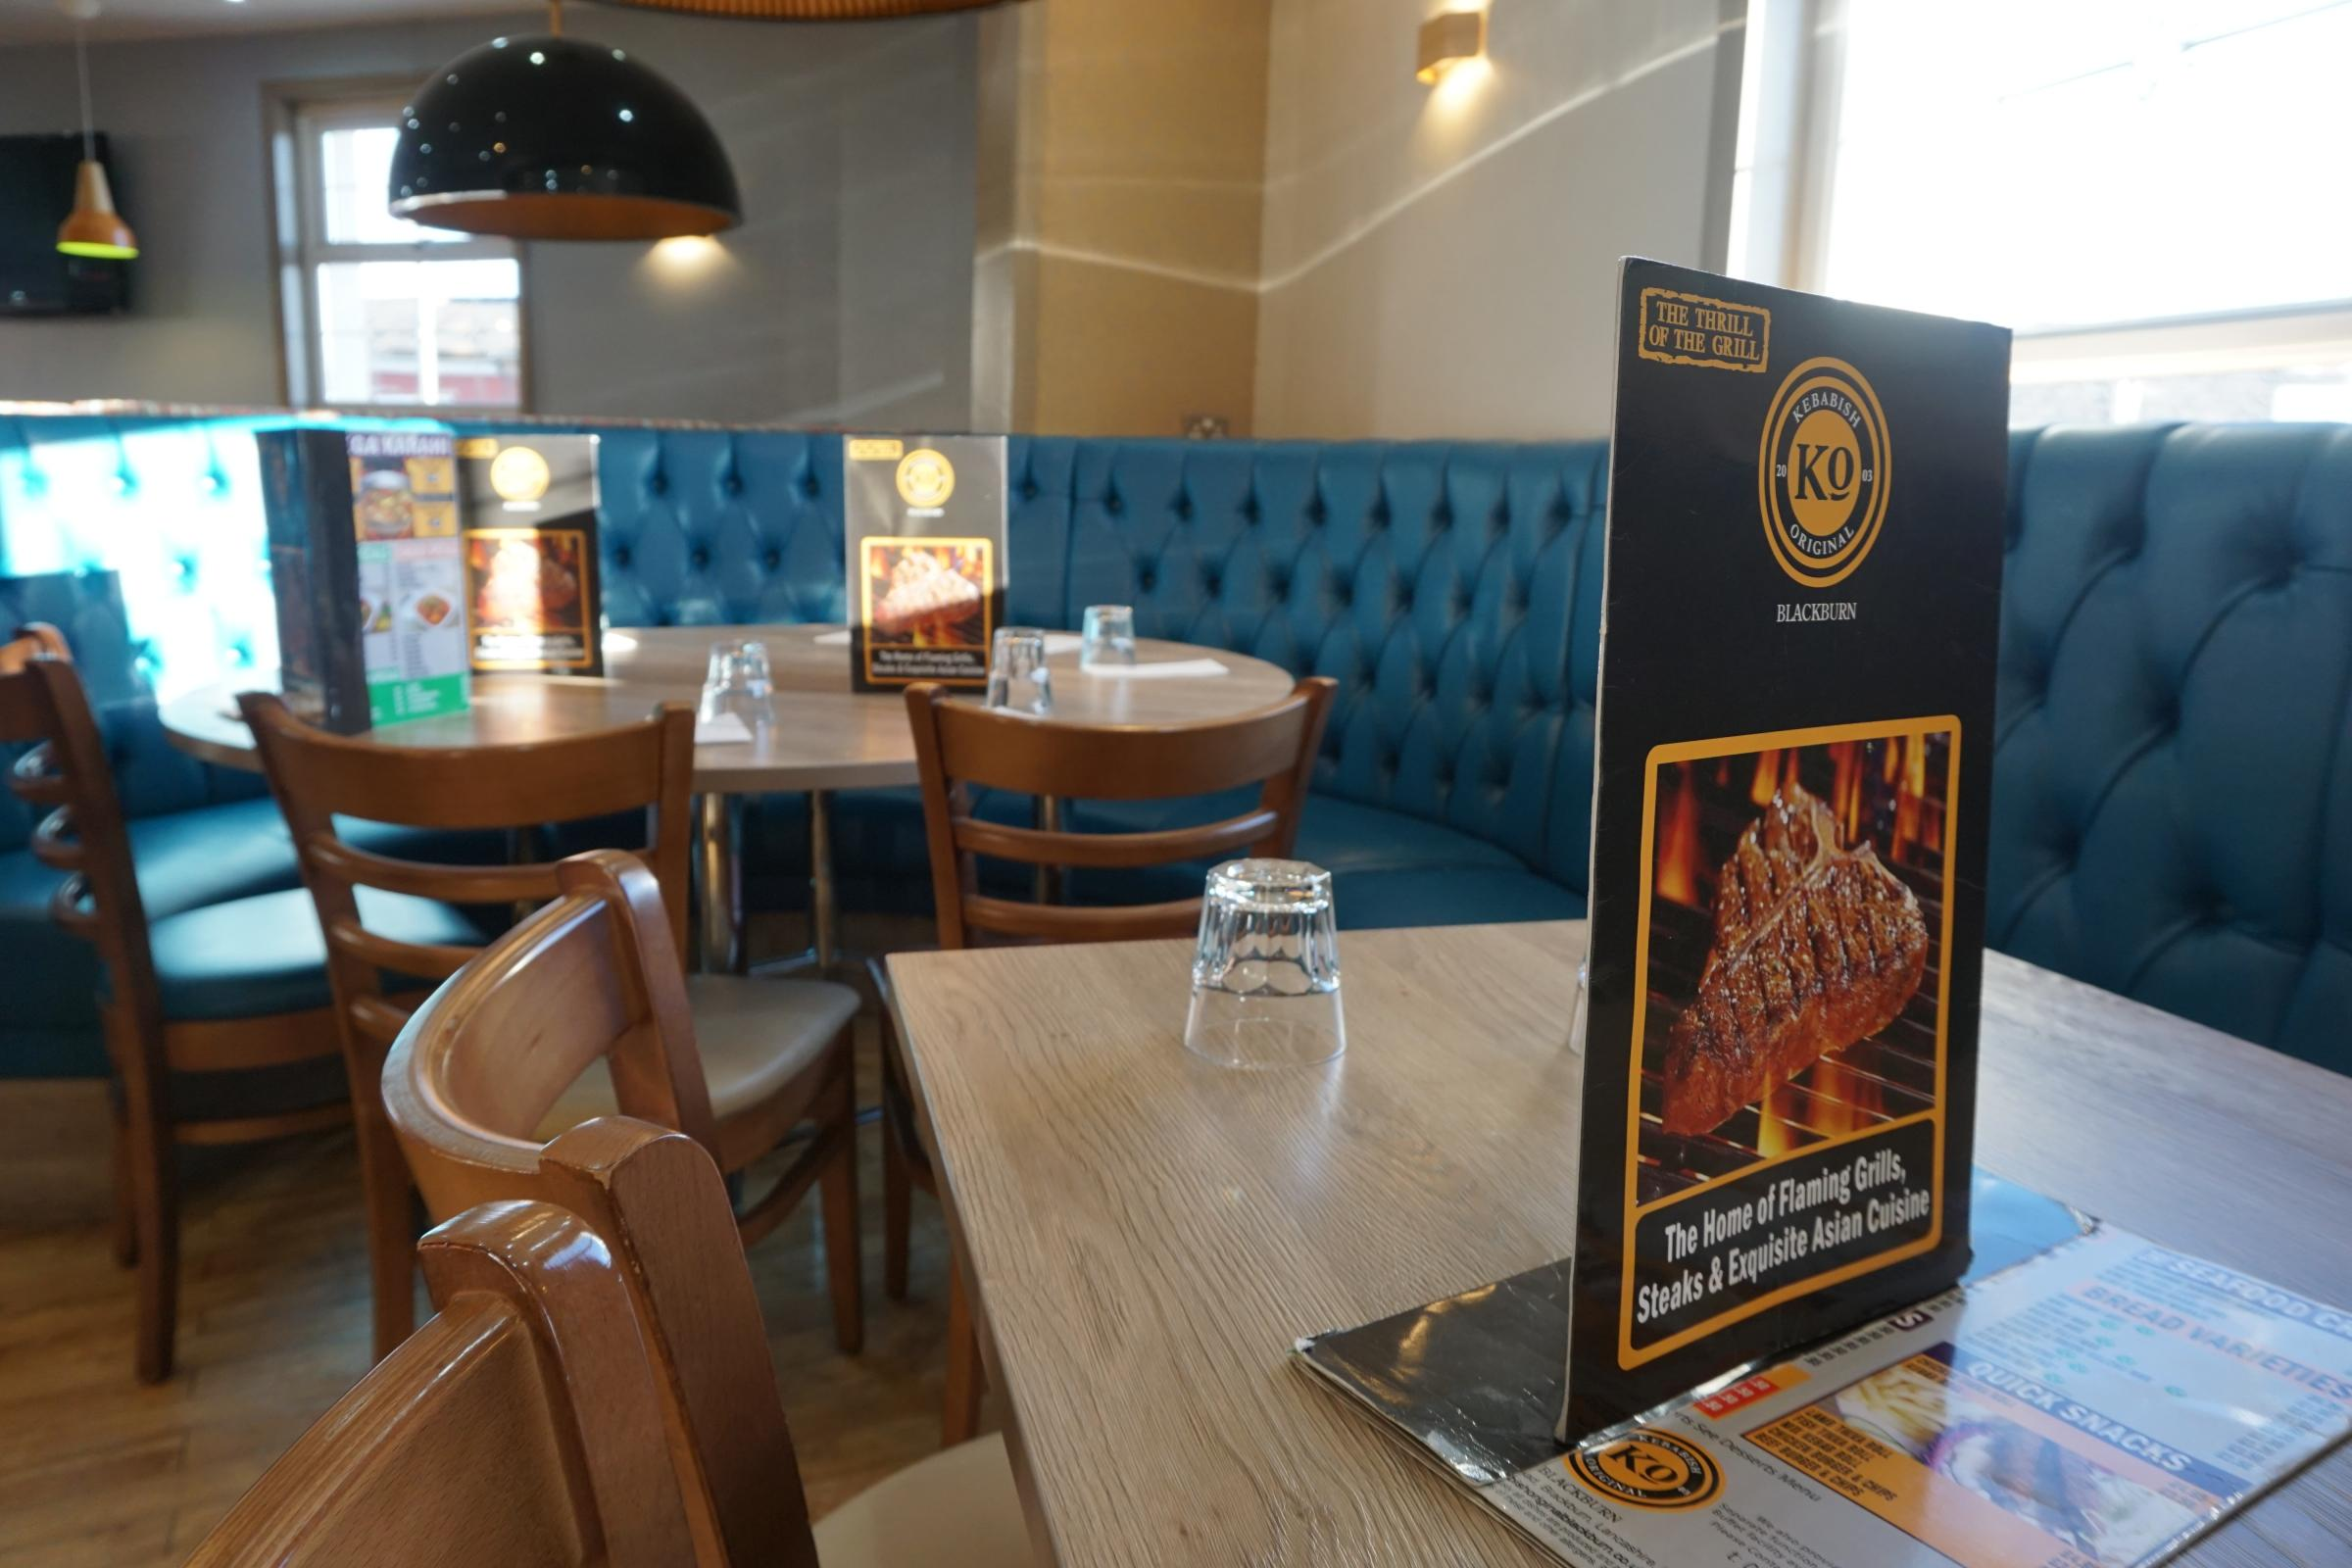 Food review: Kebabish Original, Blackburn